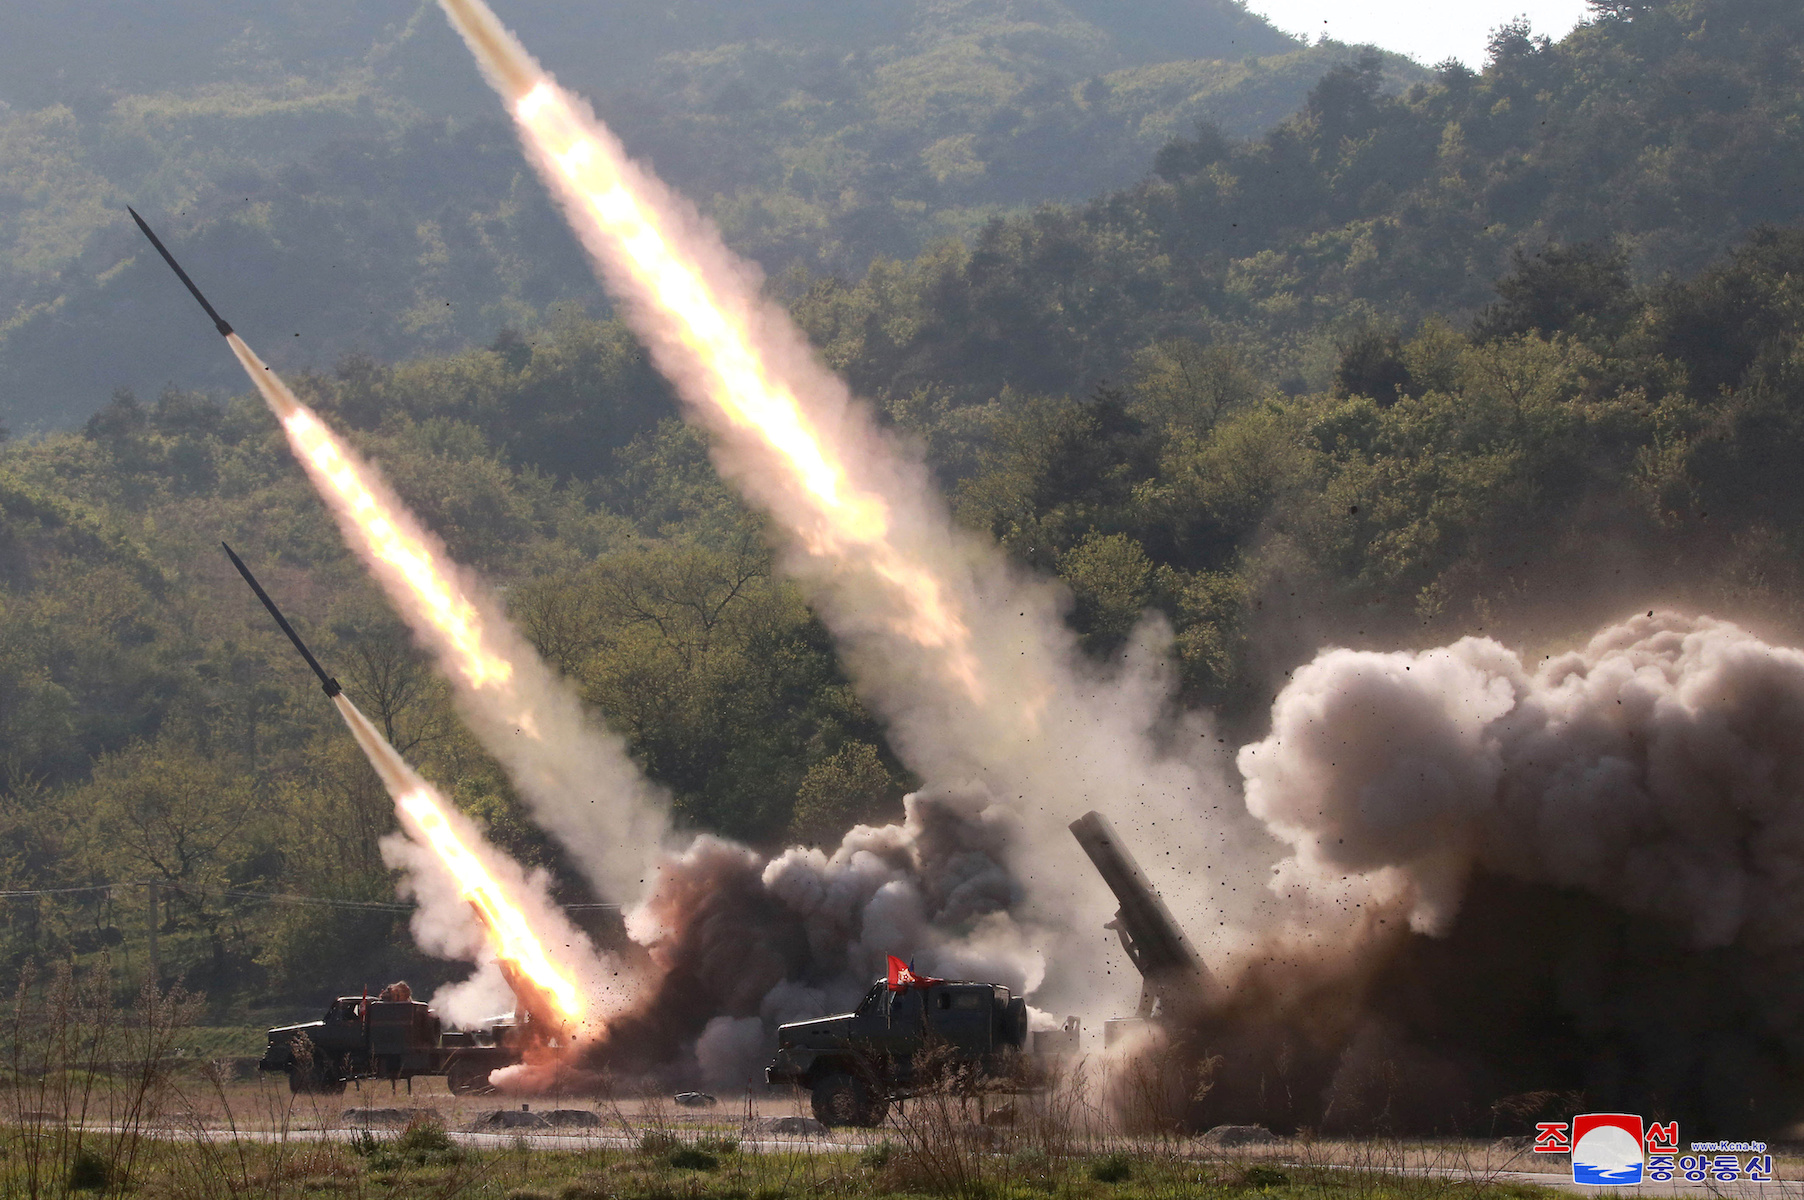 Missiles are seen launched during a military drill in North Korea